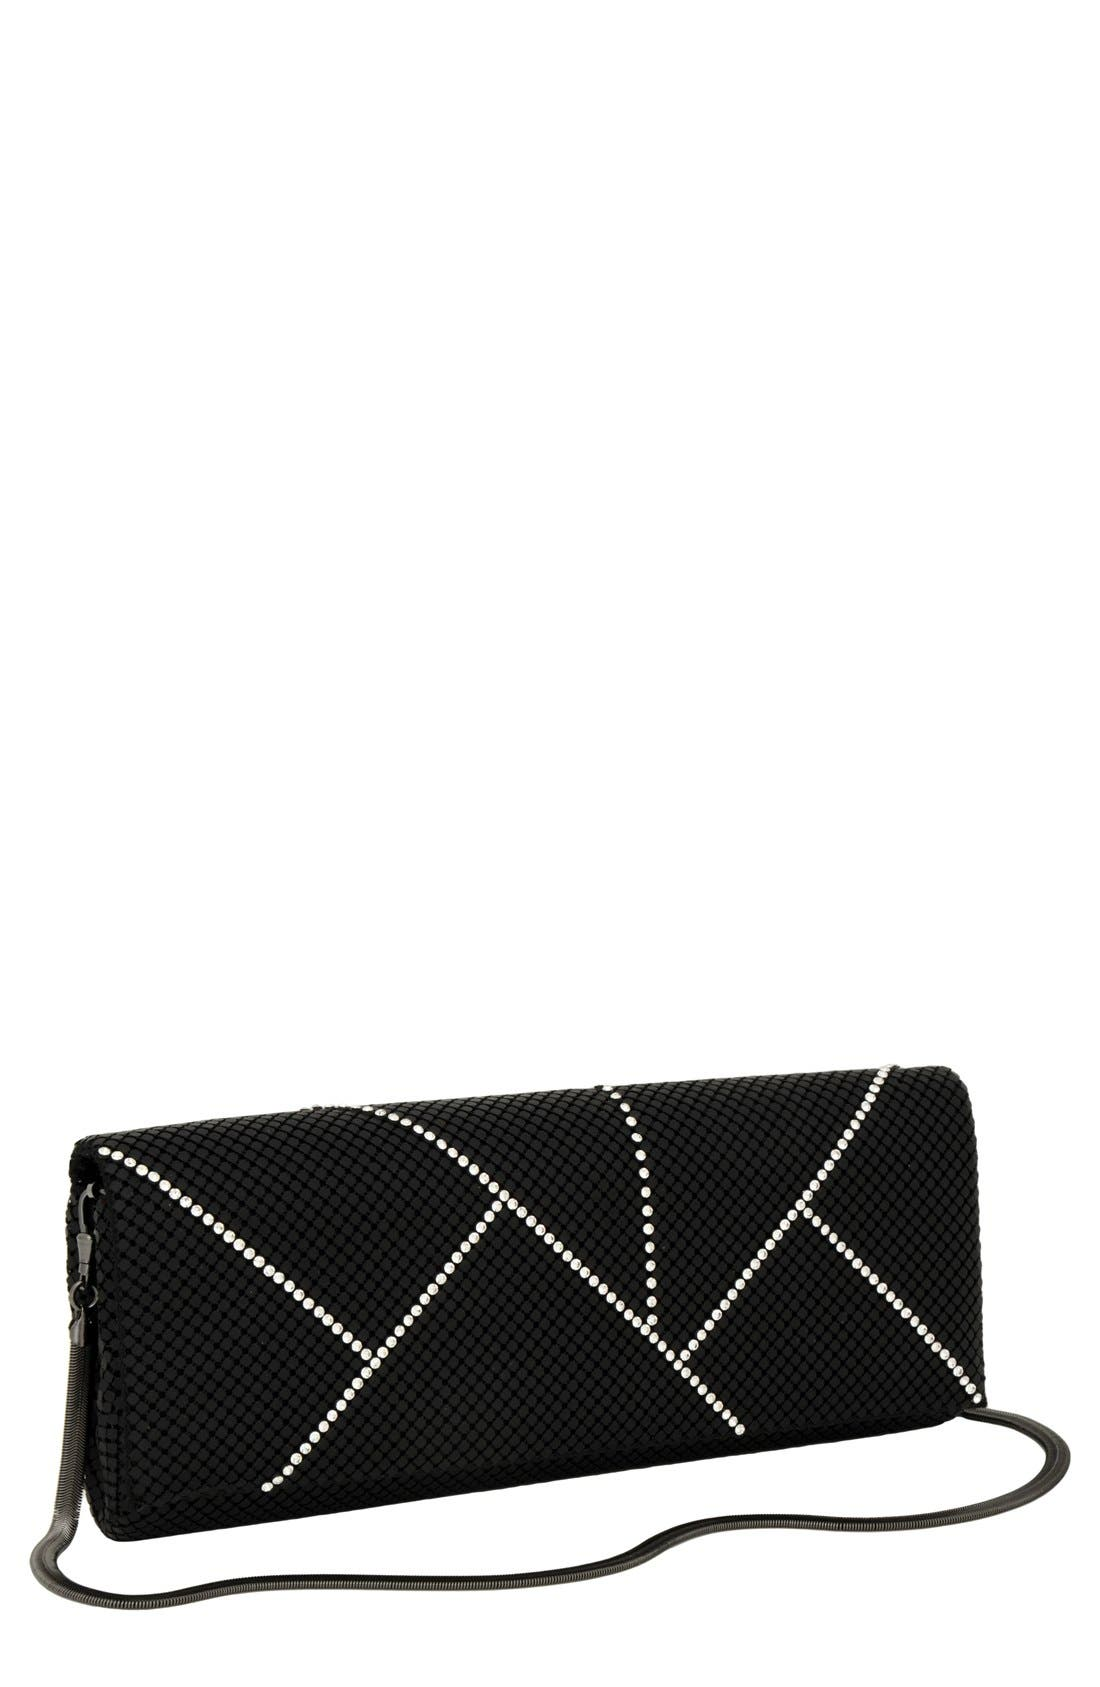 Main Image - Whiting & Davis 'Crystal Segments' Flap Clutch